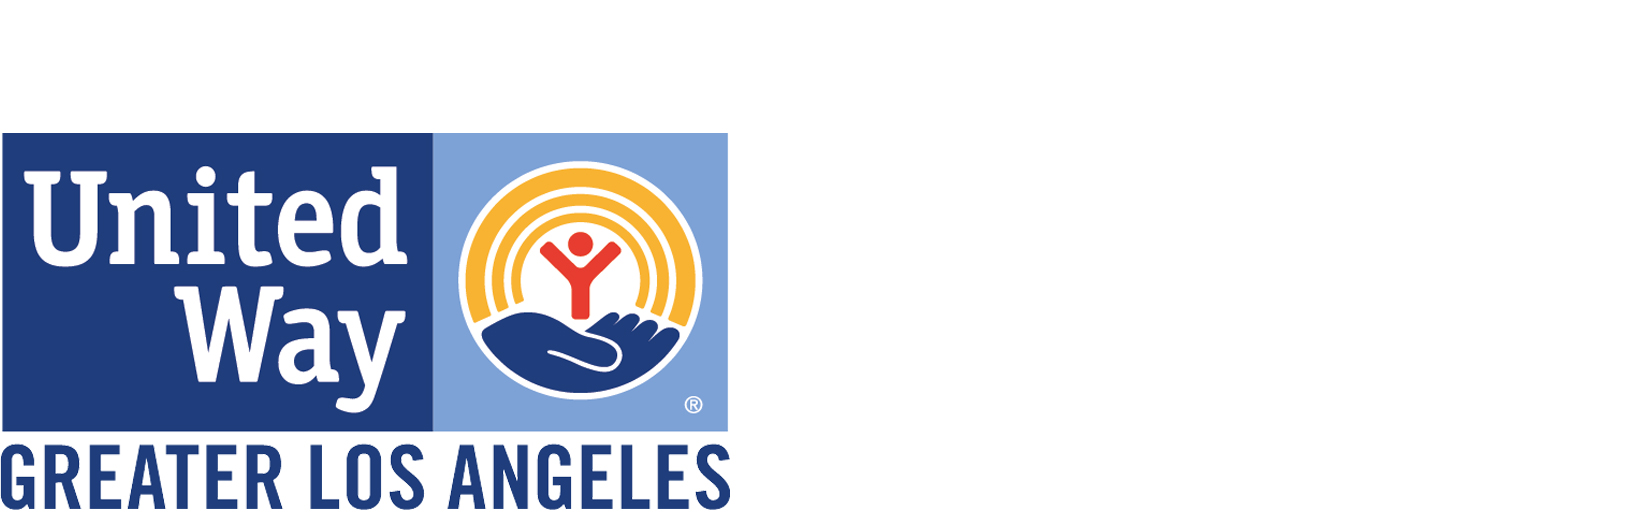 The United Way of Greater Los Angeles